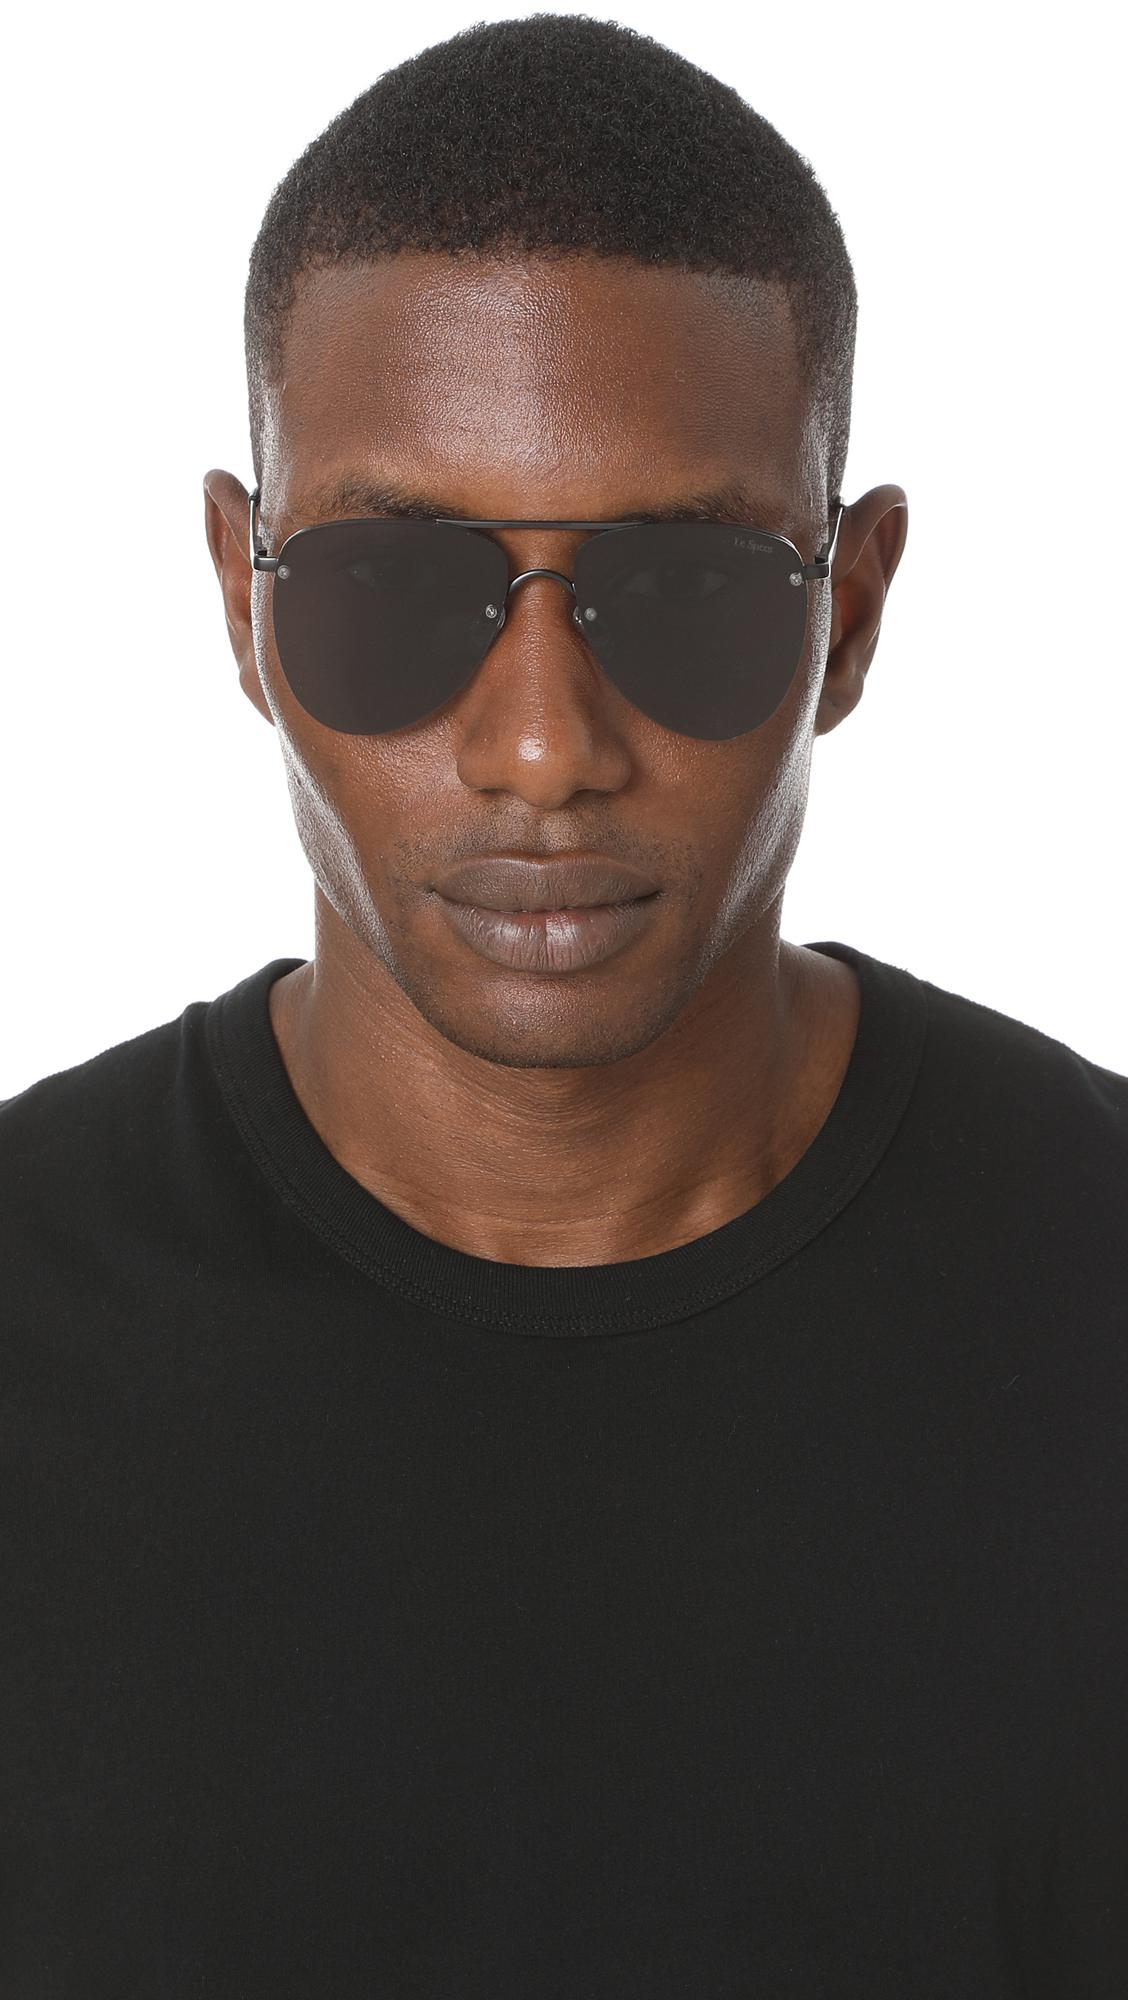 36a57dc68ee Le Specs - Black The Prince Sunglasses for Men - Lyst. View fullscreen